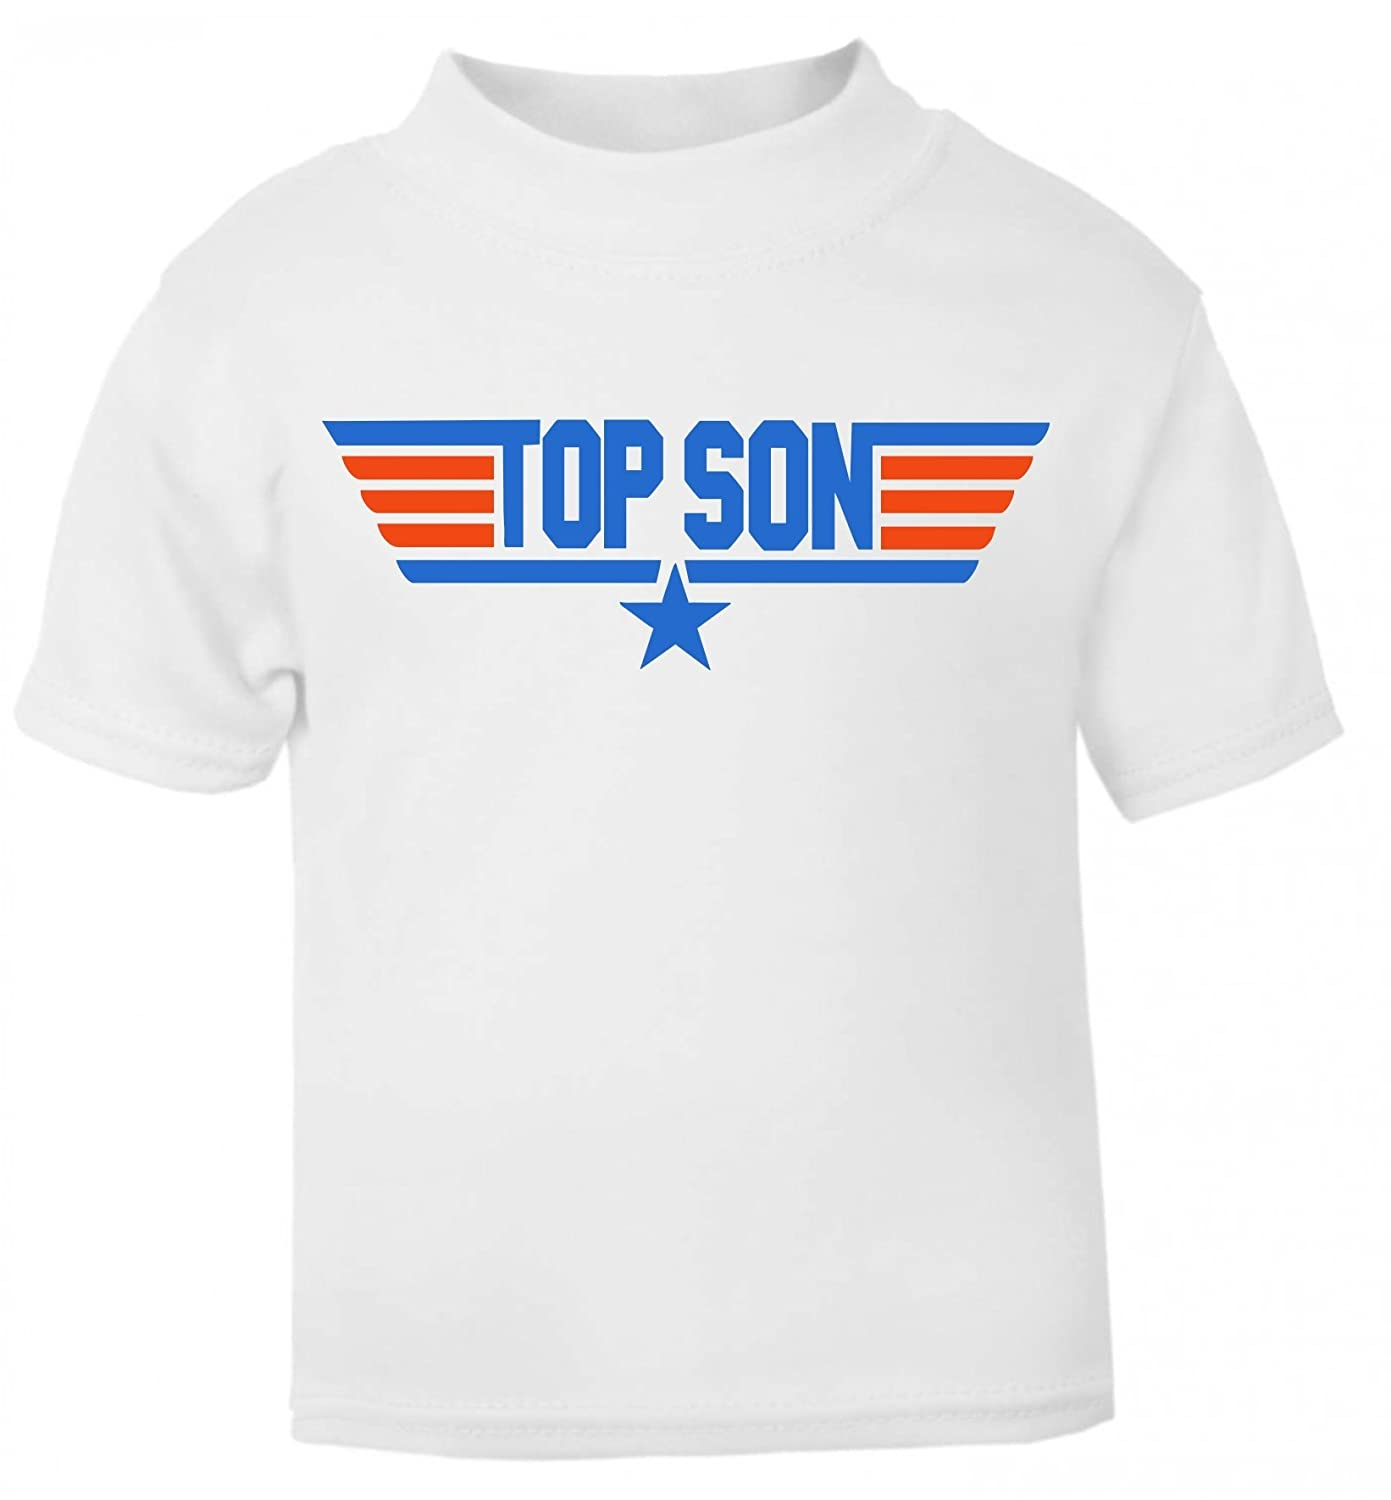 'TOP DAD & TOP SON'' Matching Fathers Day T-shirt Gift Set in White